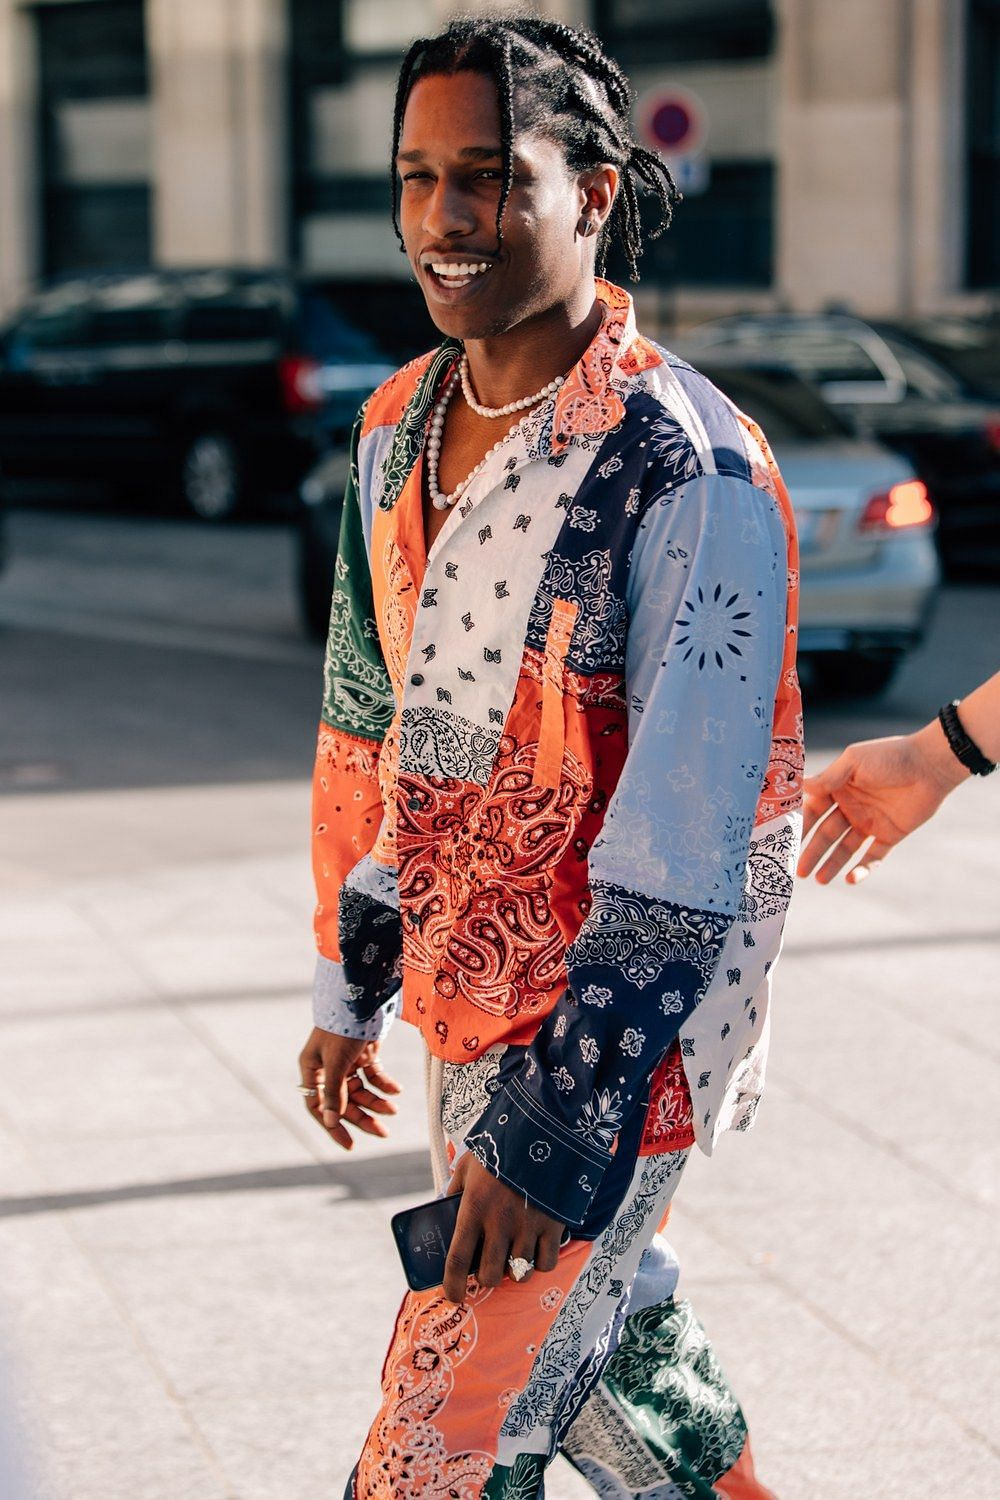 ASAP Rocky sporting paisley overalls